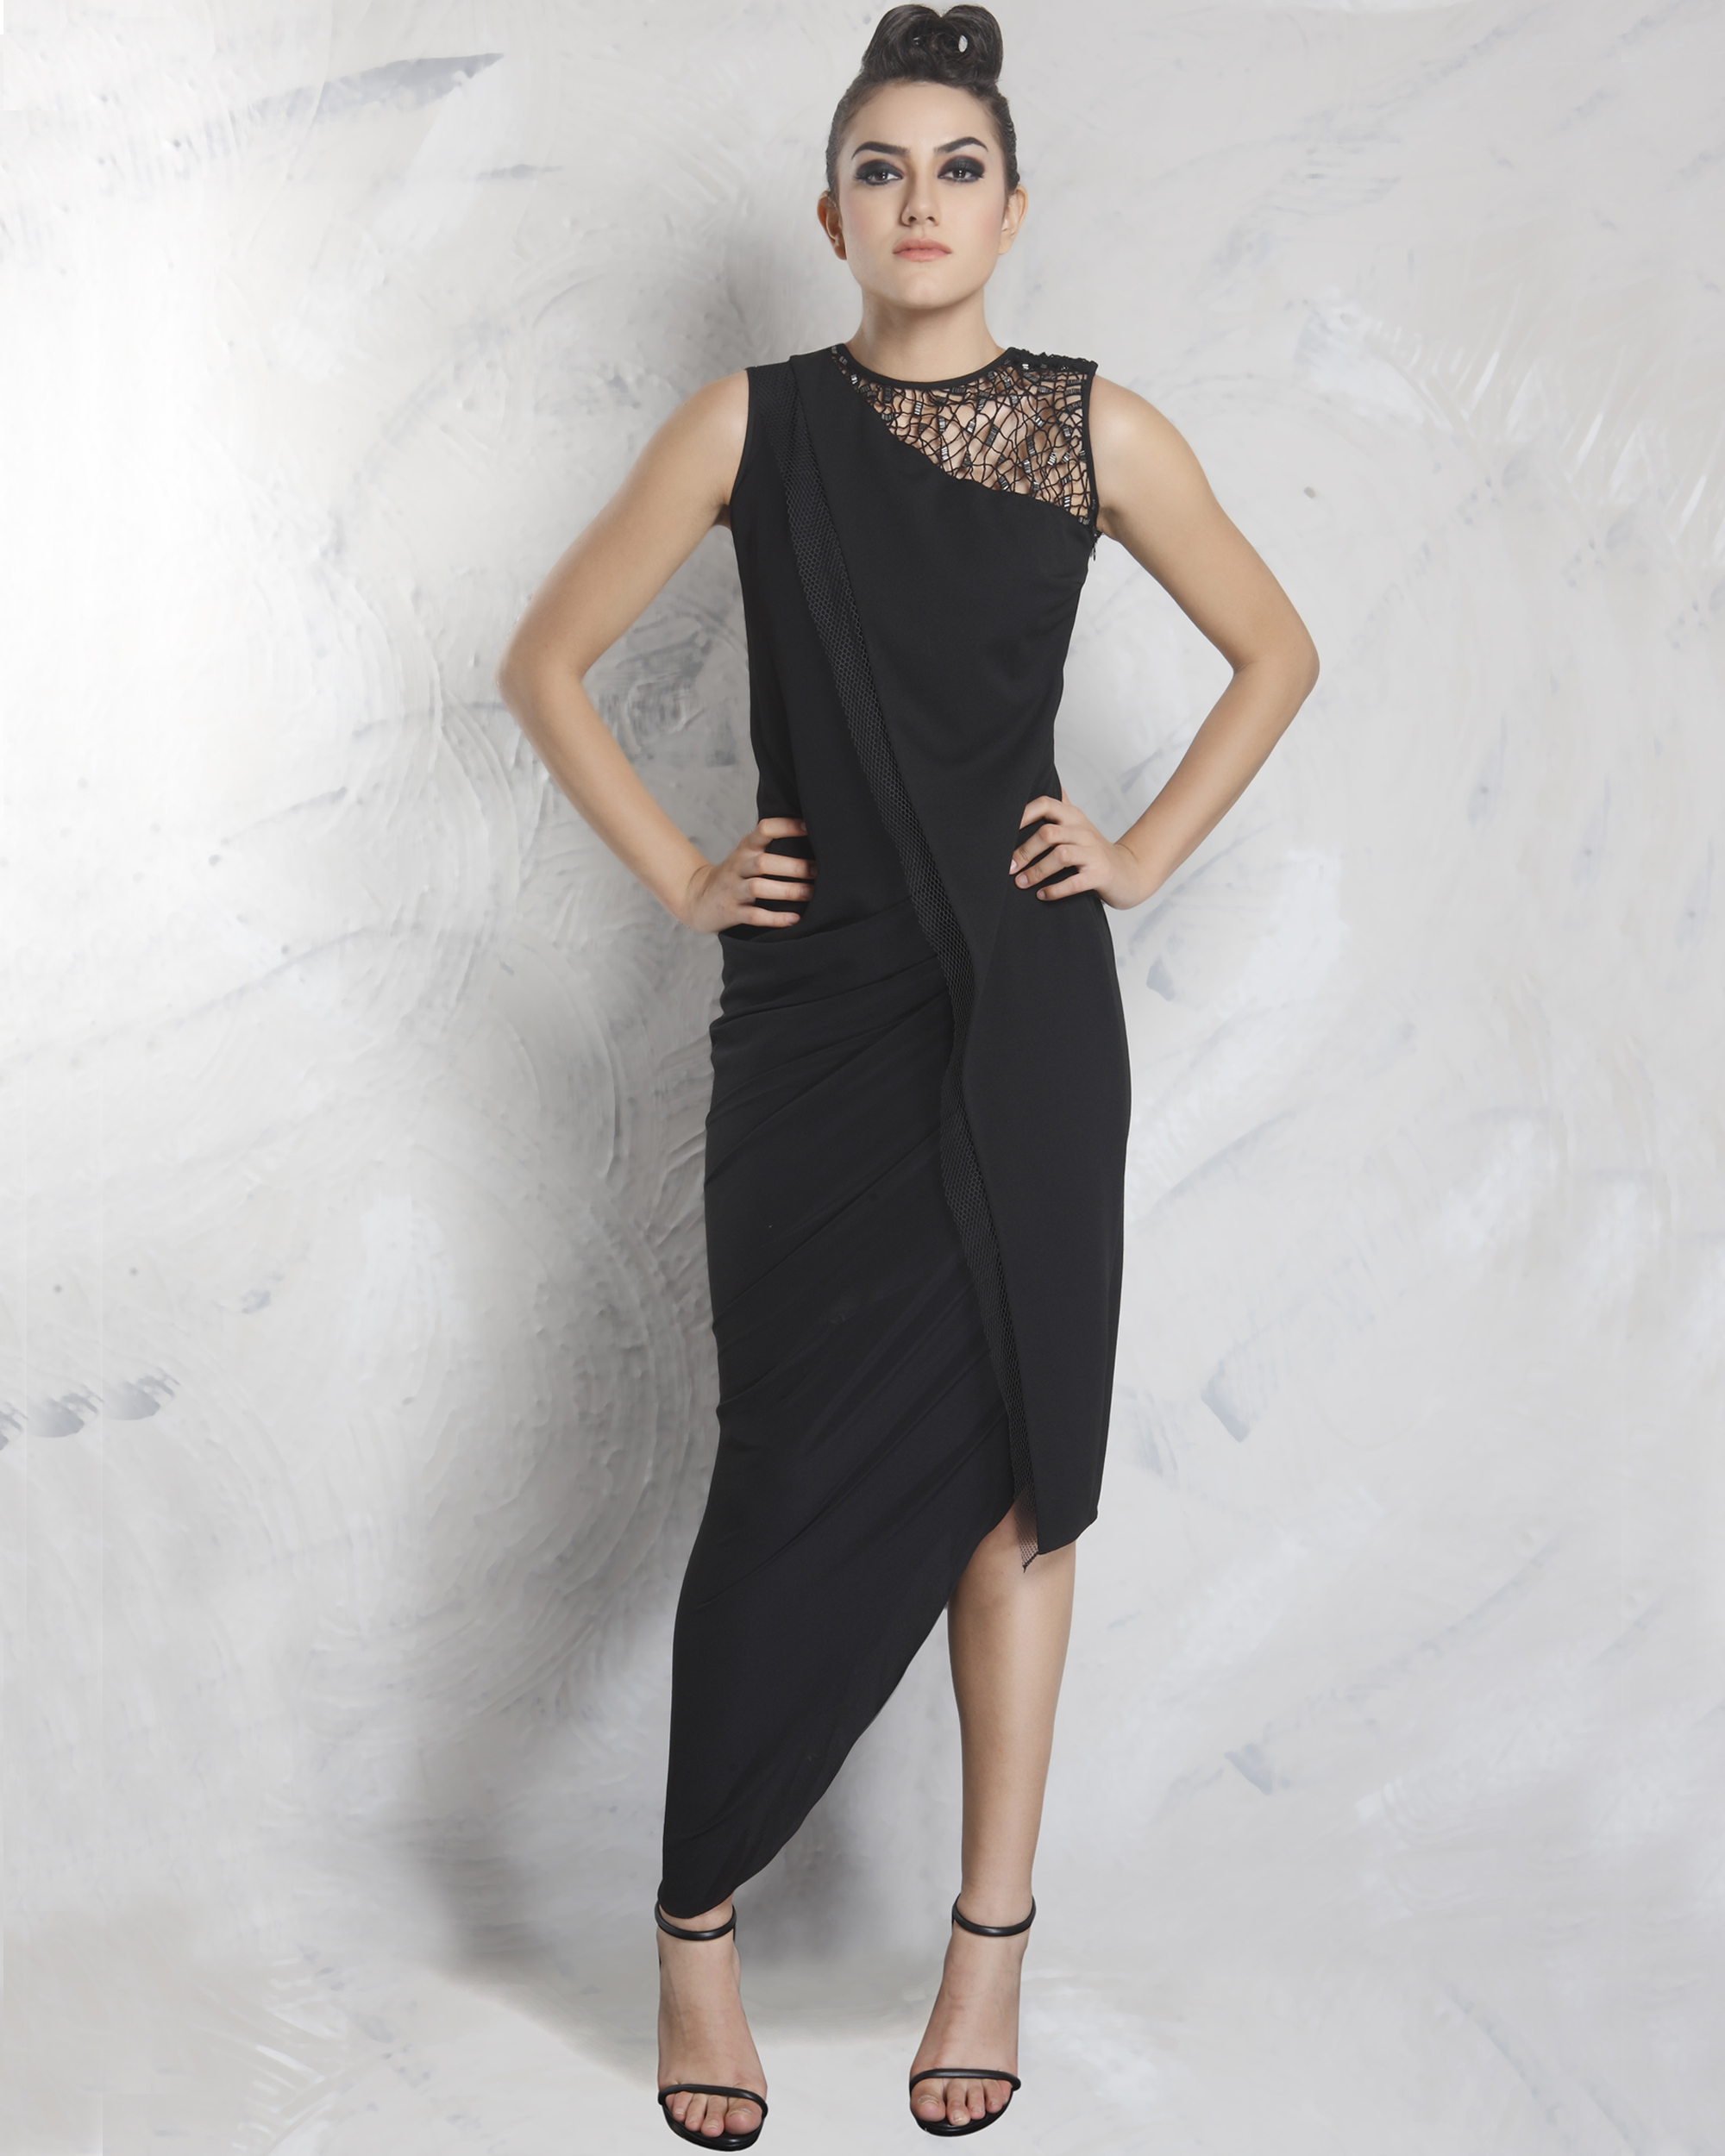 Spade black drape dress